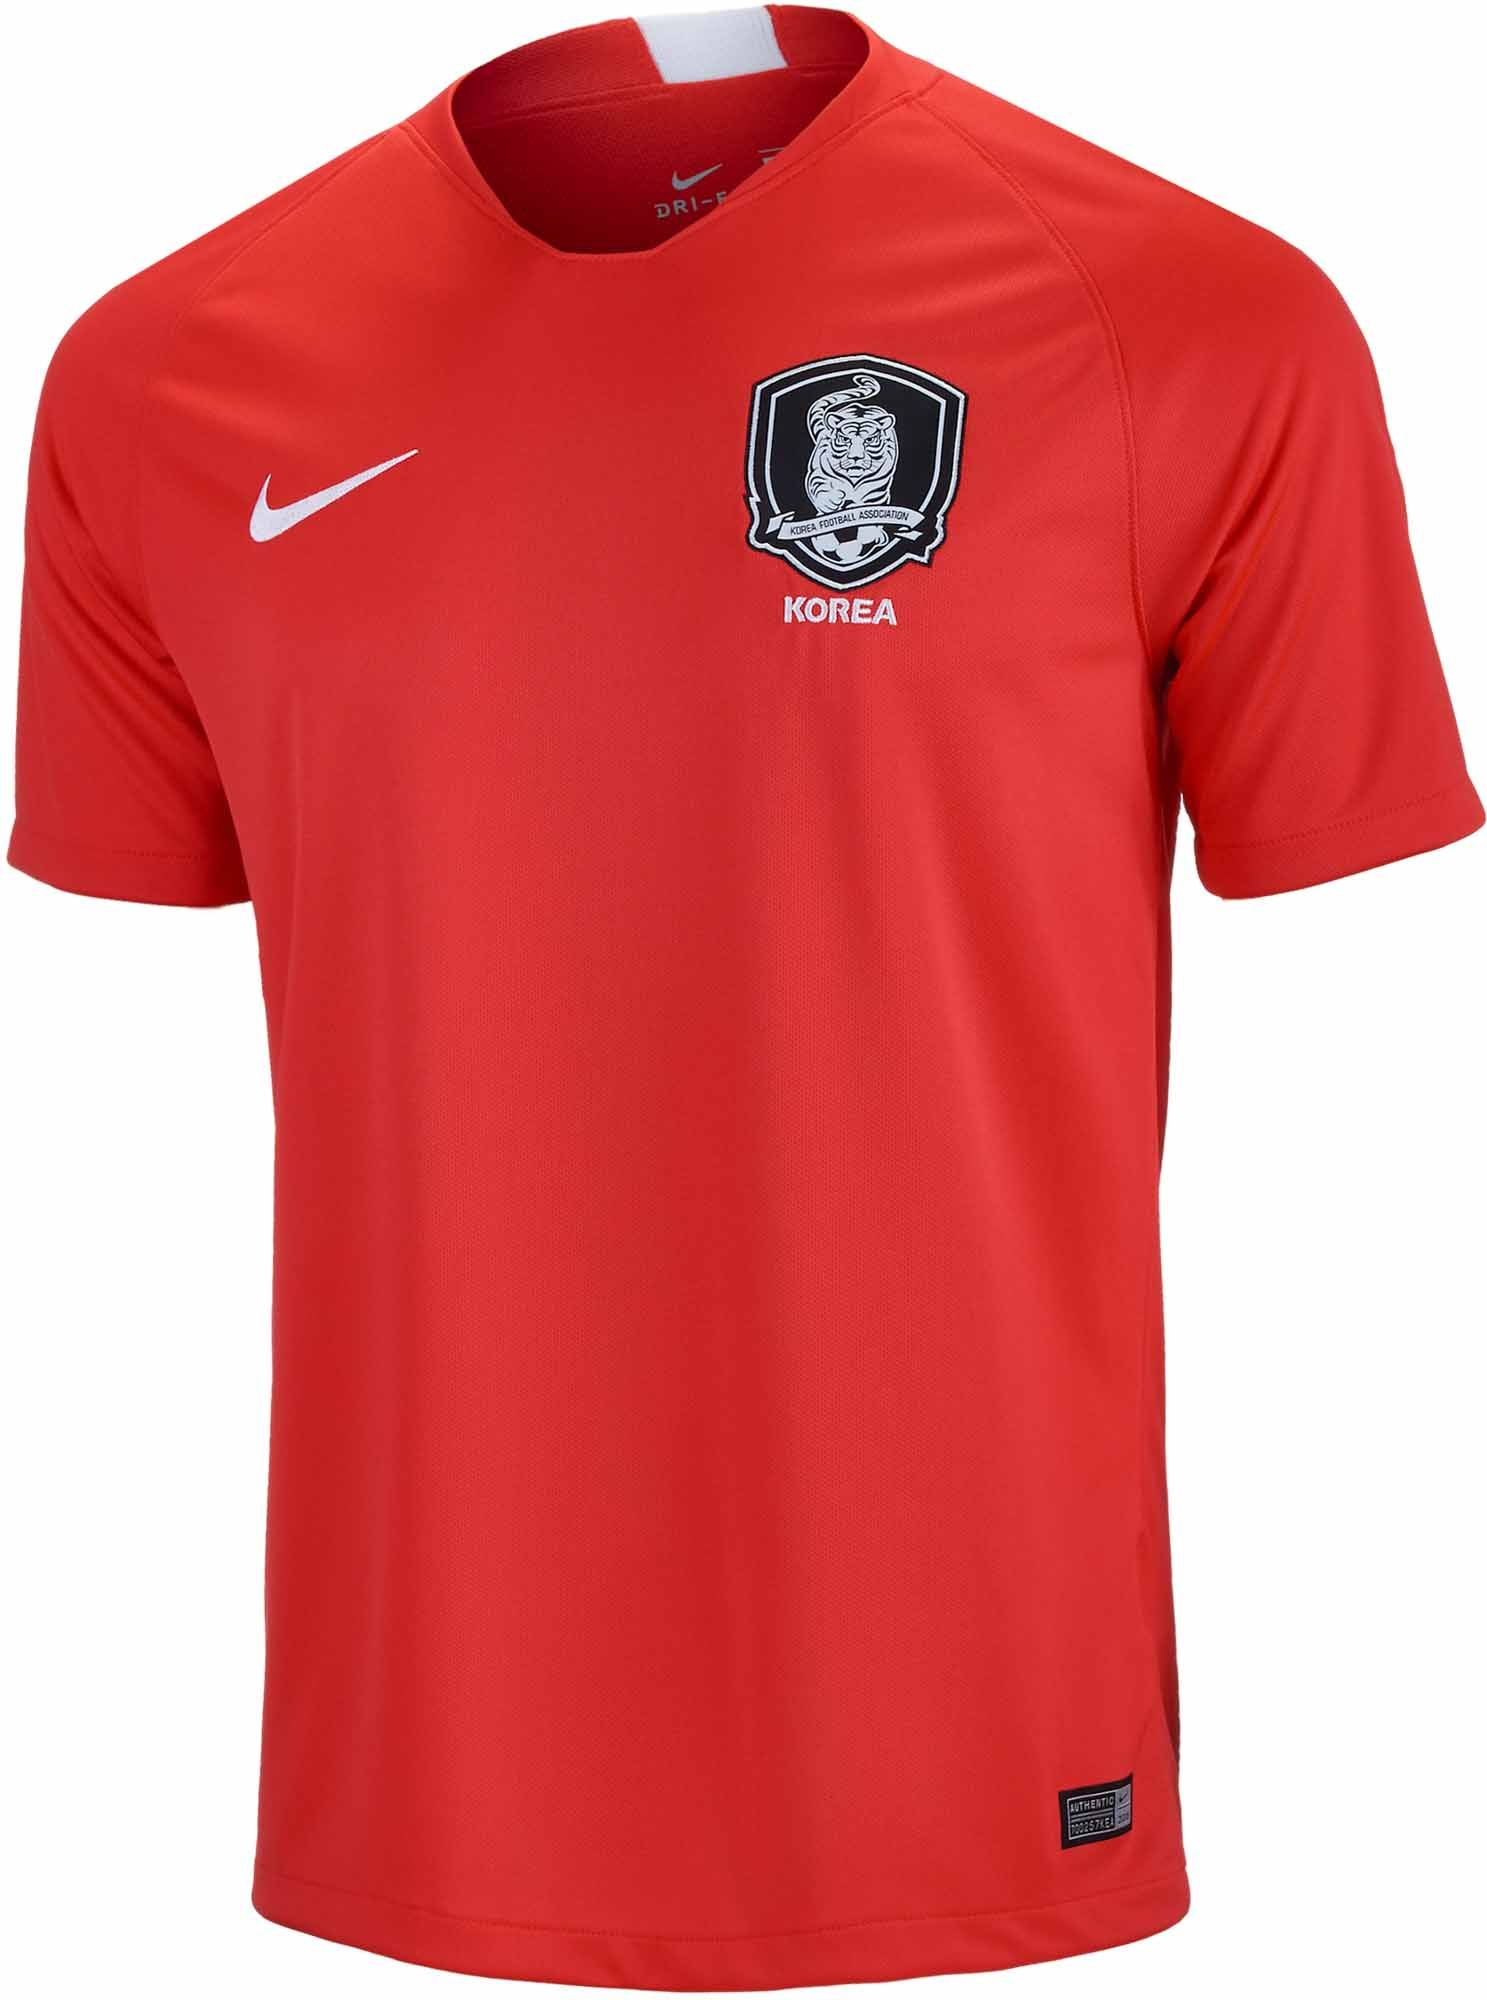 1d85a1f692b 2018 19 Nike South Korea Home Jersey. Buy yours now from www.soccerpro.com